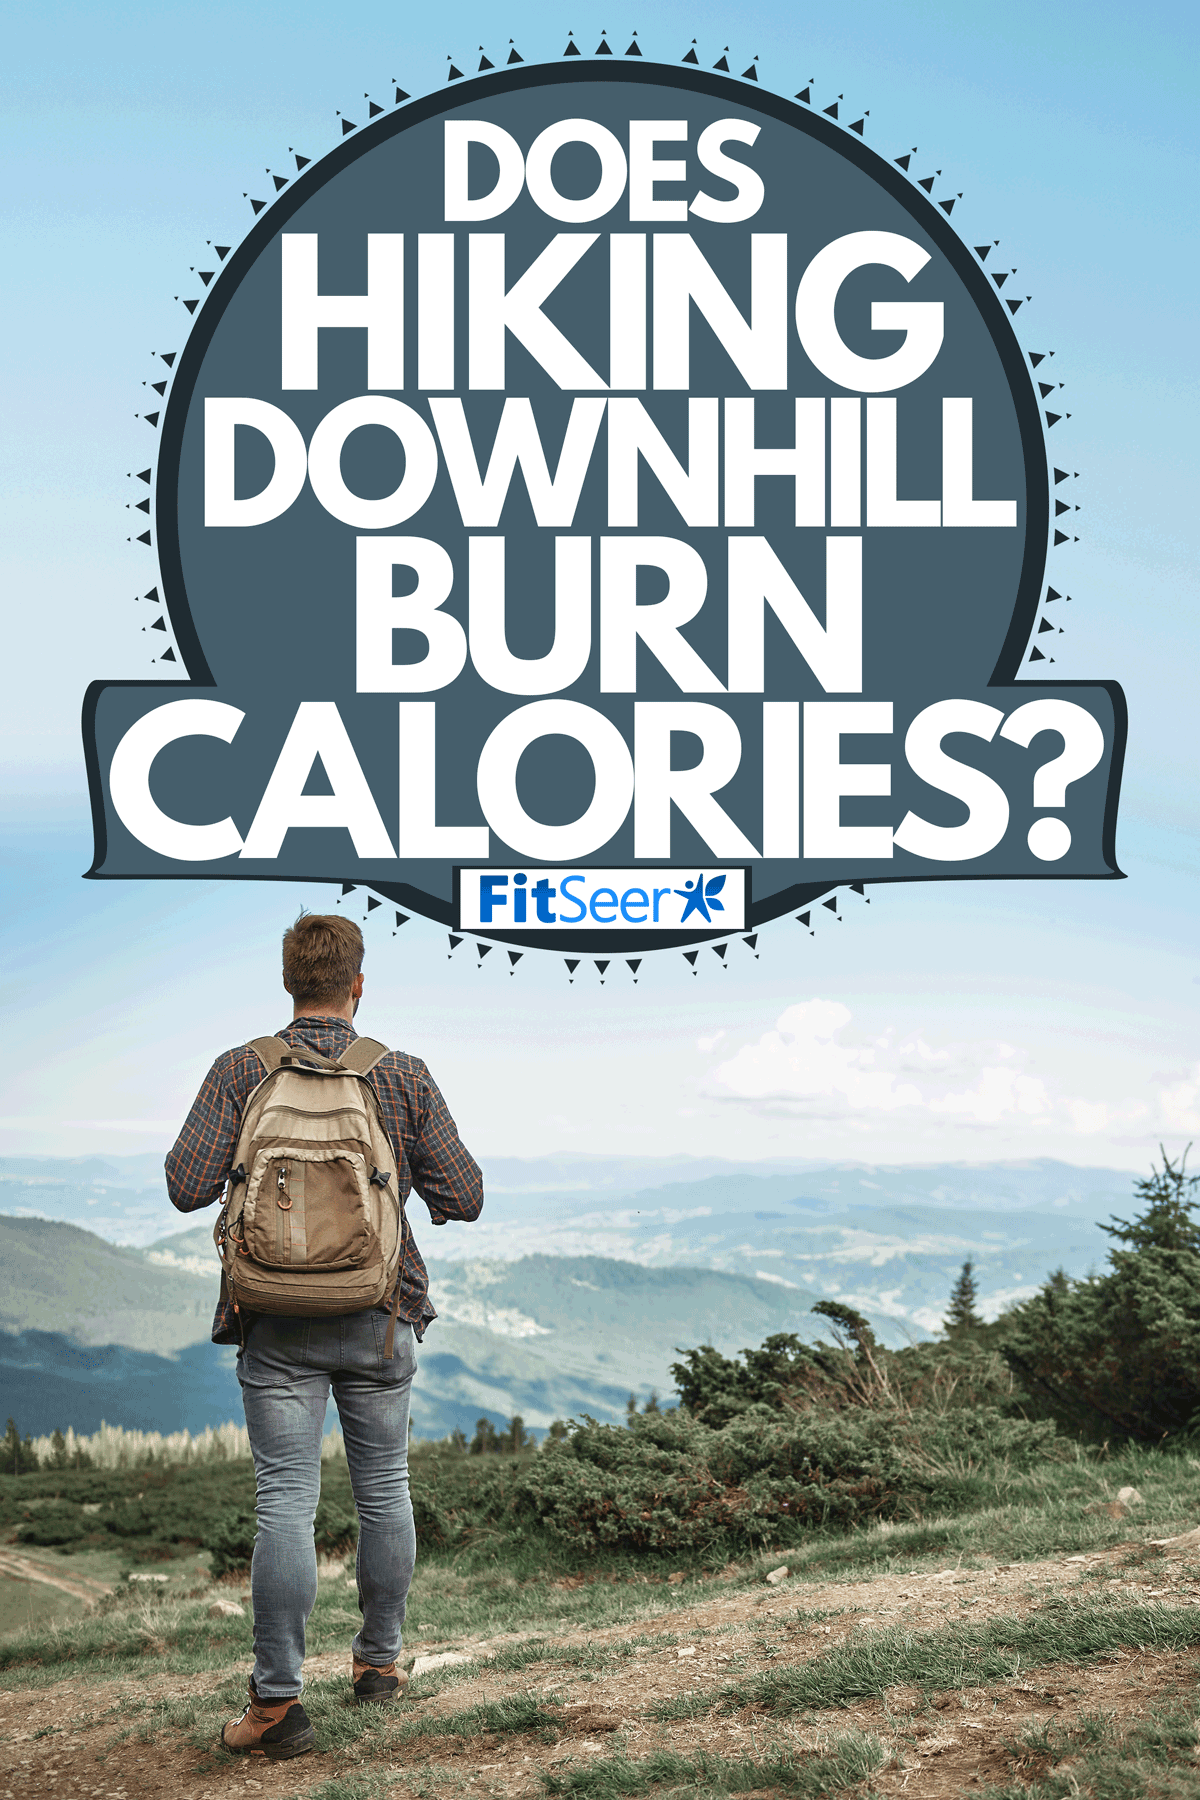 A man hiking downhill carrying his backpack, Does Hiking Downhill Burn Calories?